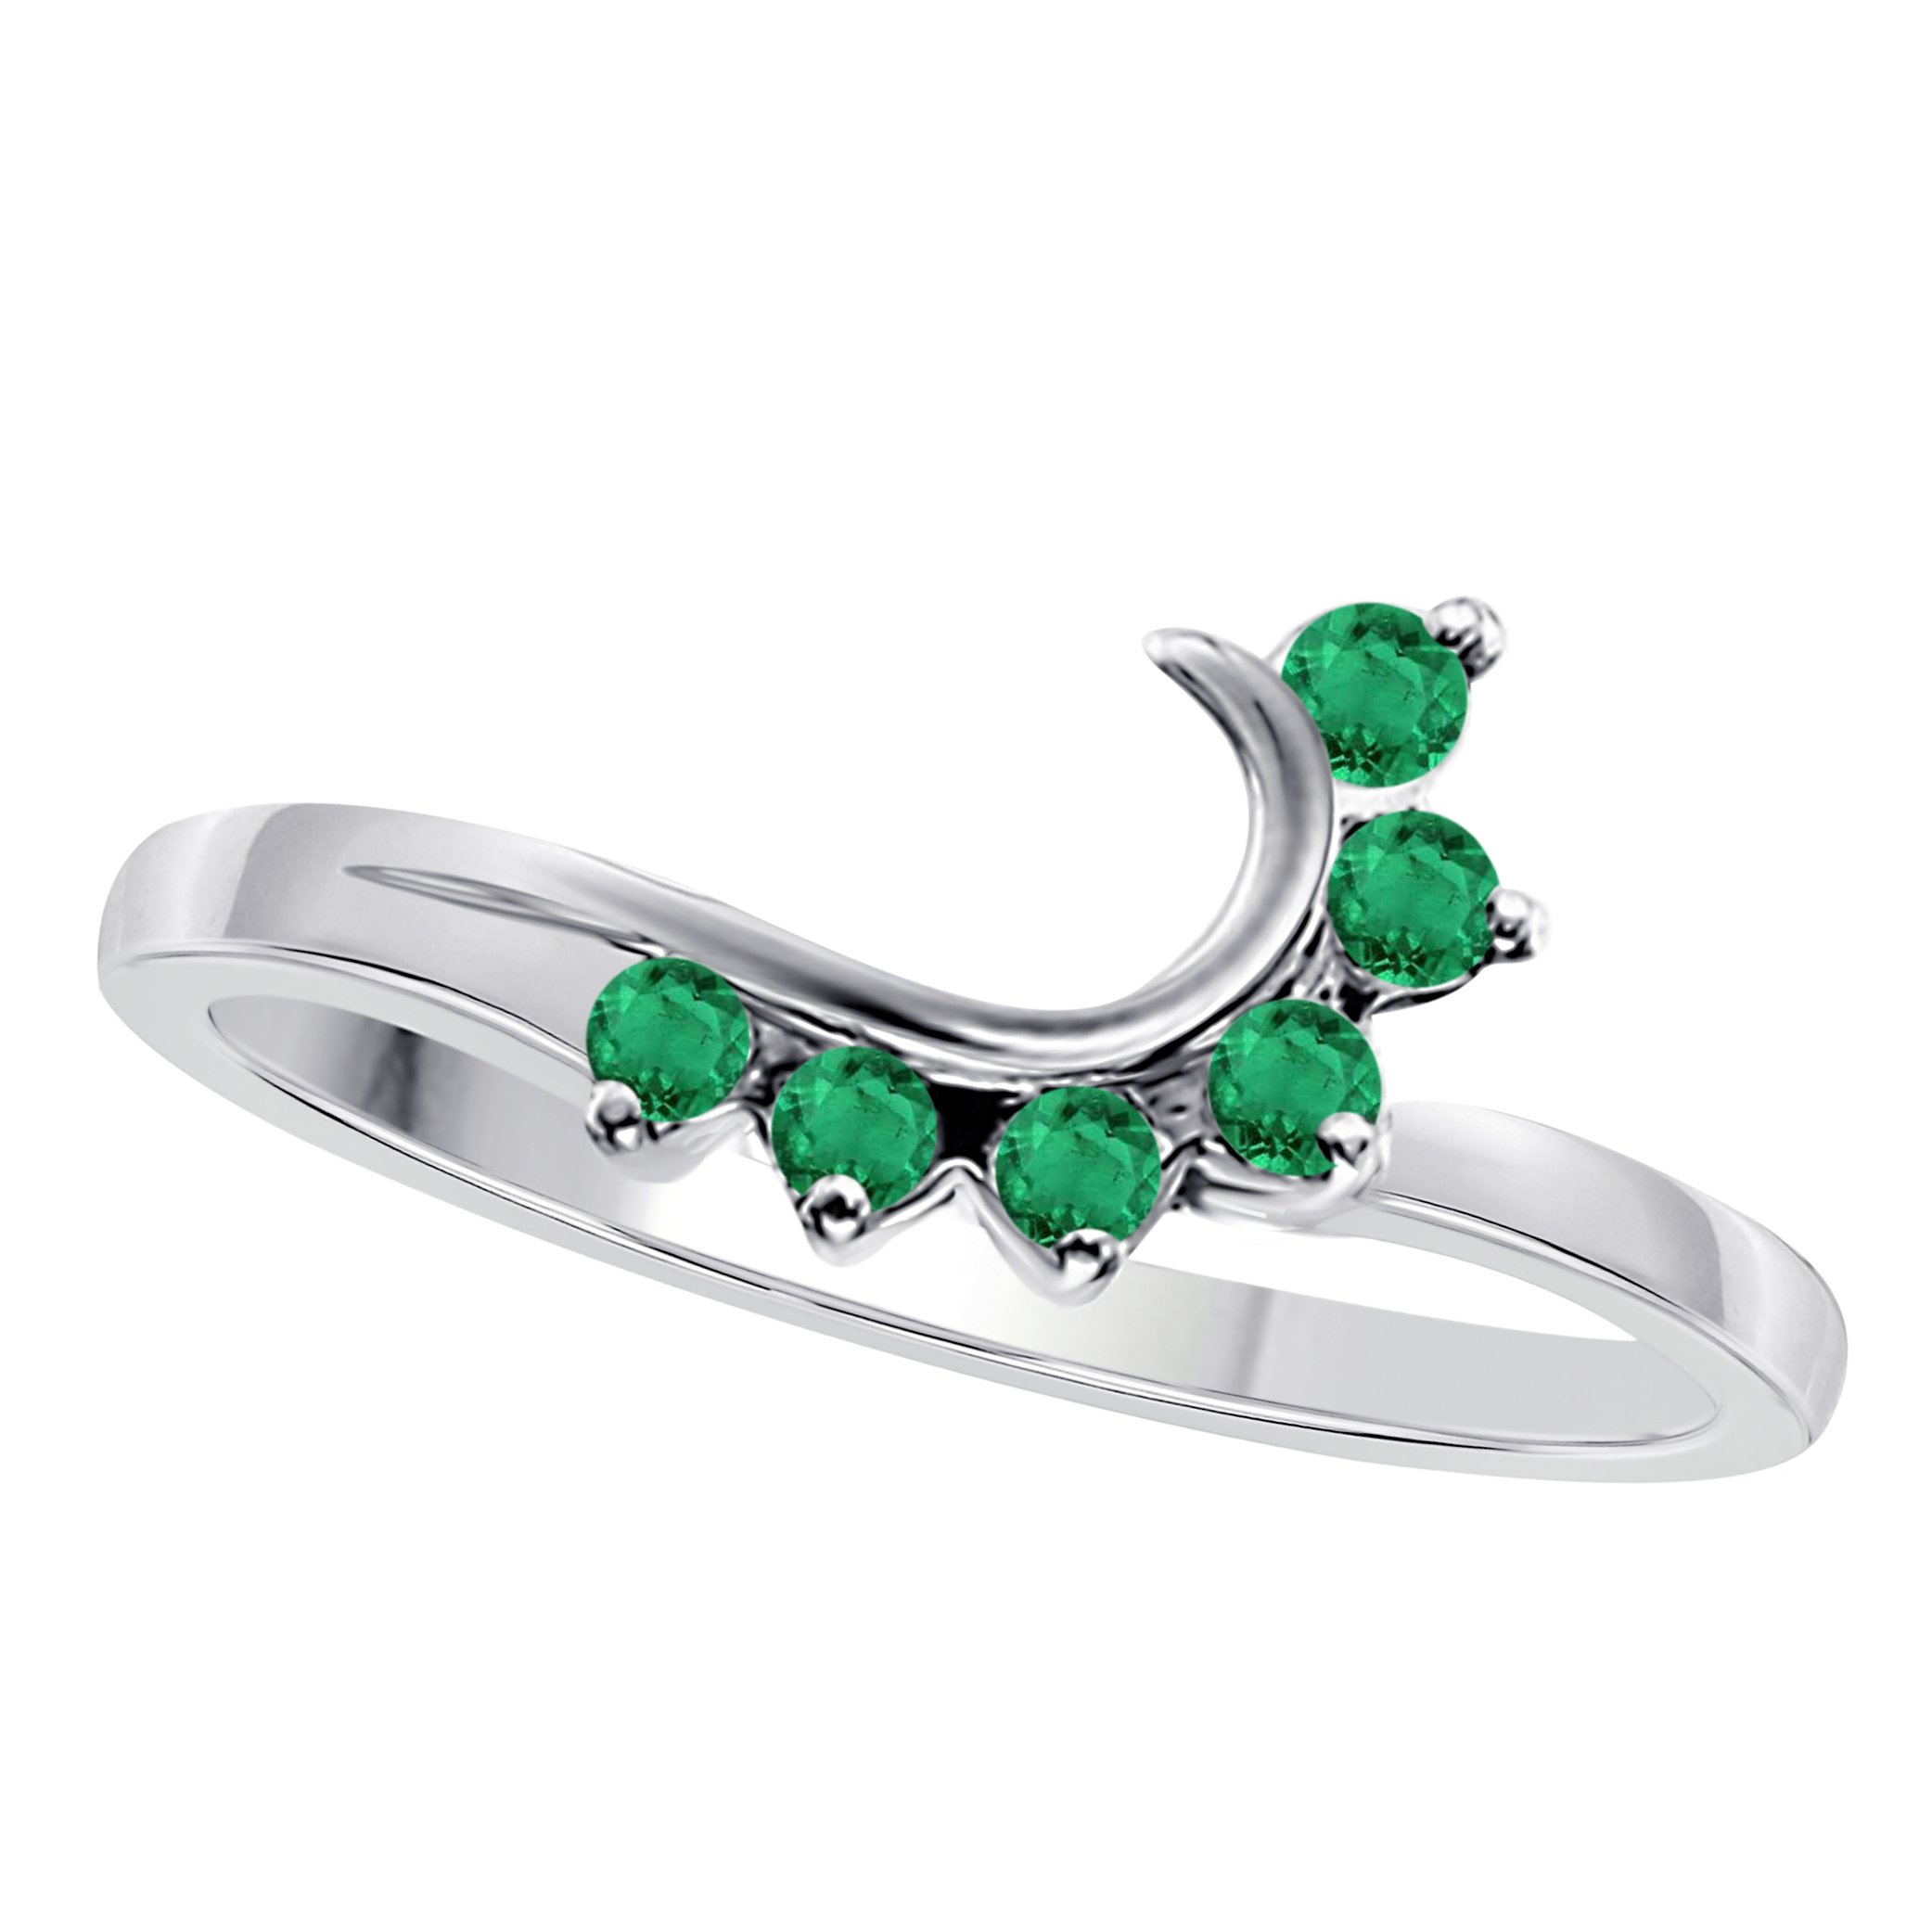 Star Retail 14K White Gold Plated Alloy Round CZ Green Emerald Wedding Band Enhancer Guard Double Ring